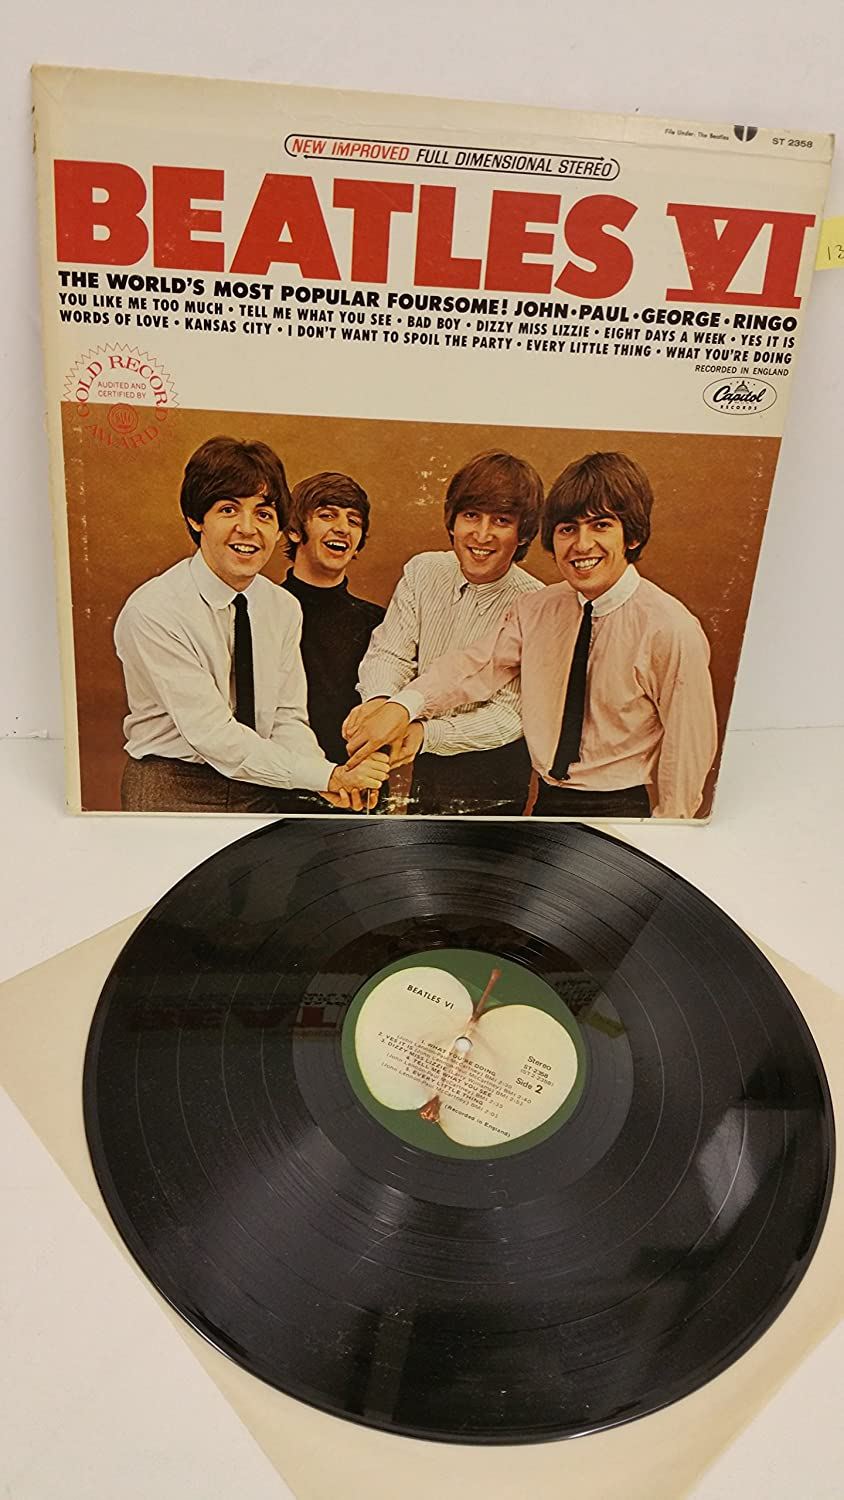 The Beatles Beatles Iv St 2358 The Beatles Amazon De Musik